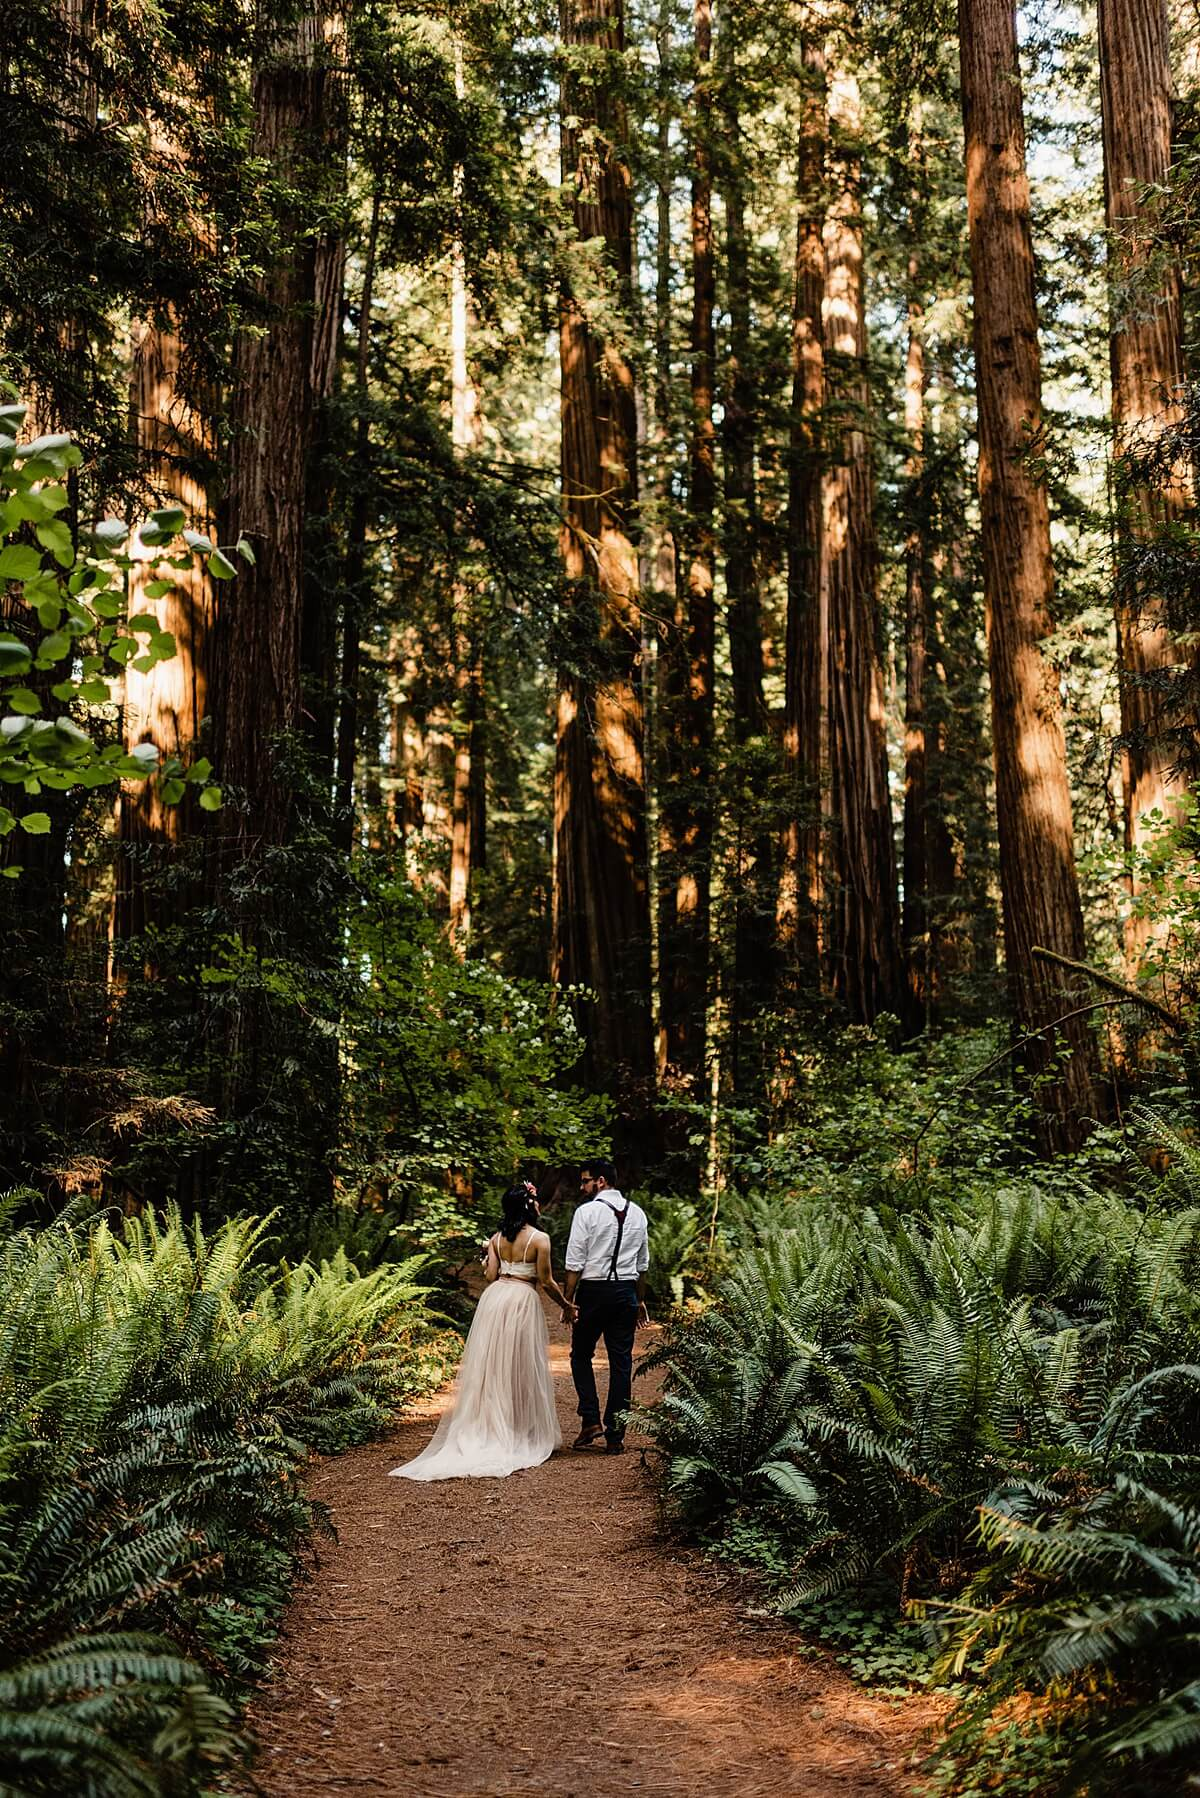 Allison-Brooks-Jedediah-Smiith-Redwoods-Adventure-Elopement-Wedding-S-Photography-Blog_0031.jpg